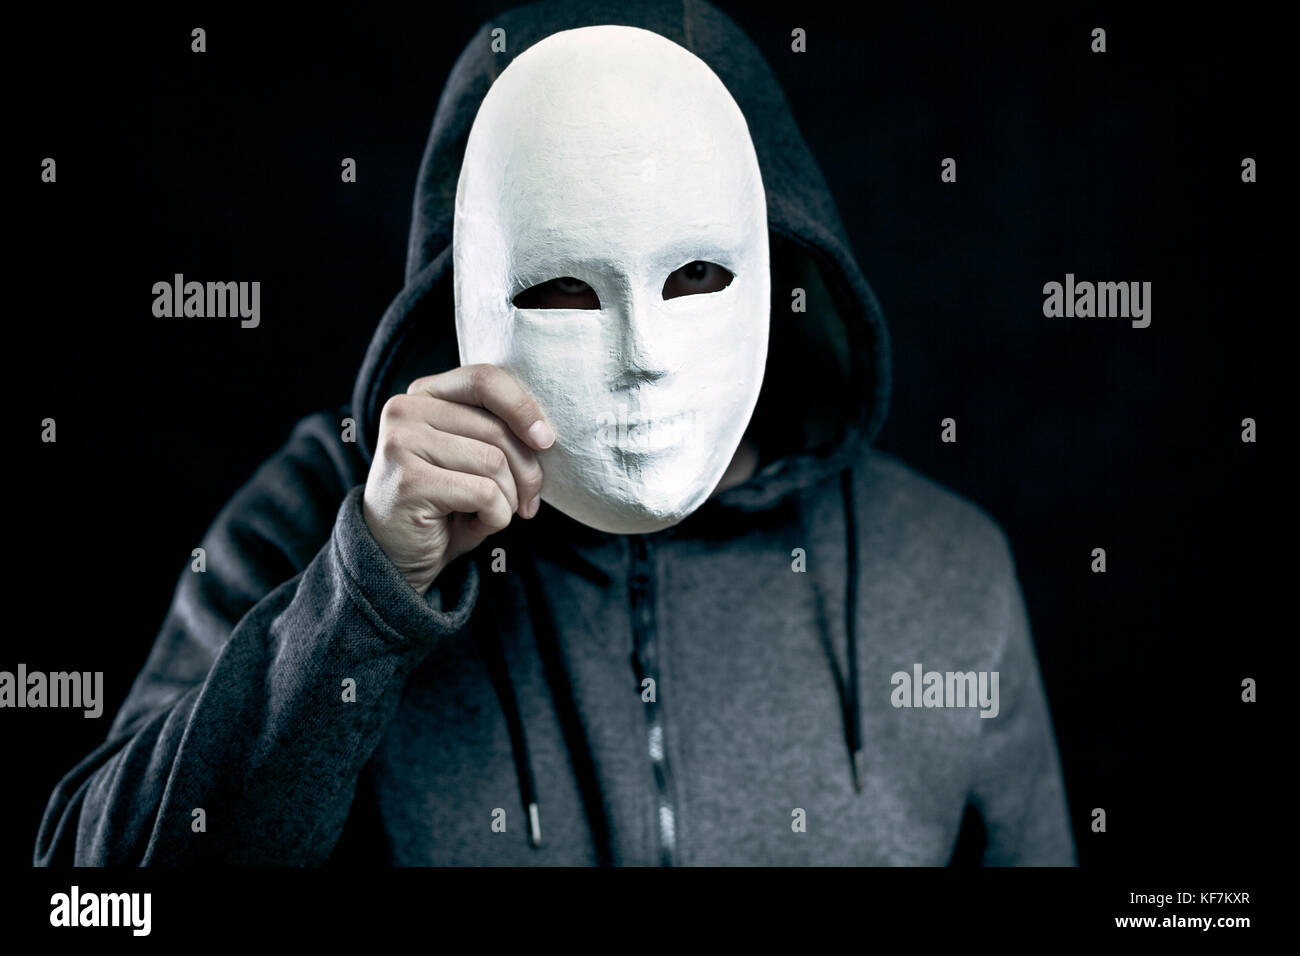 Man holding white mask for hide his face Stock Photo